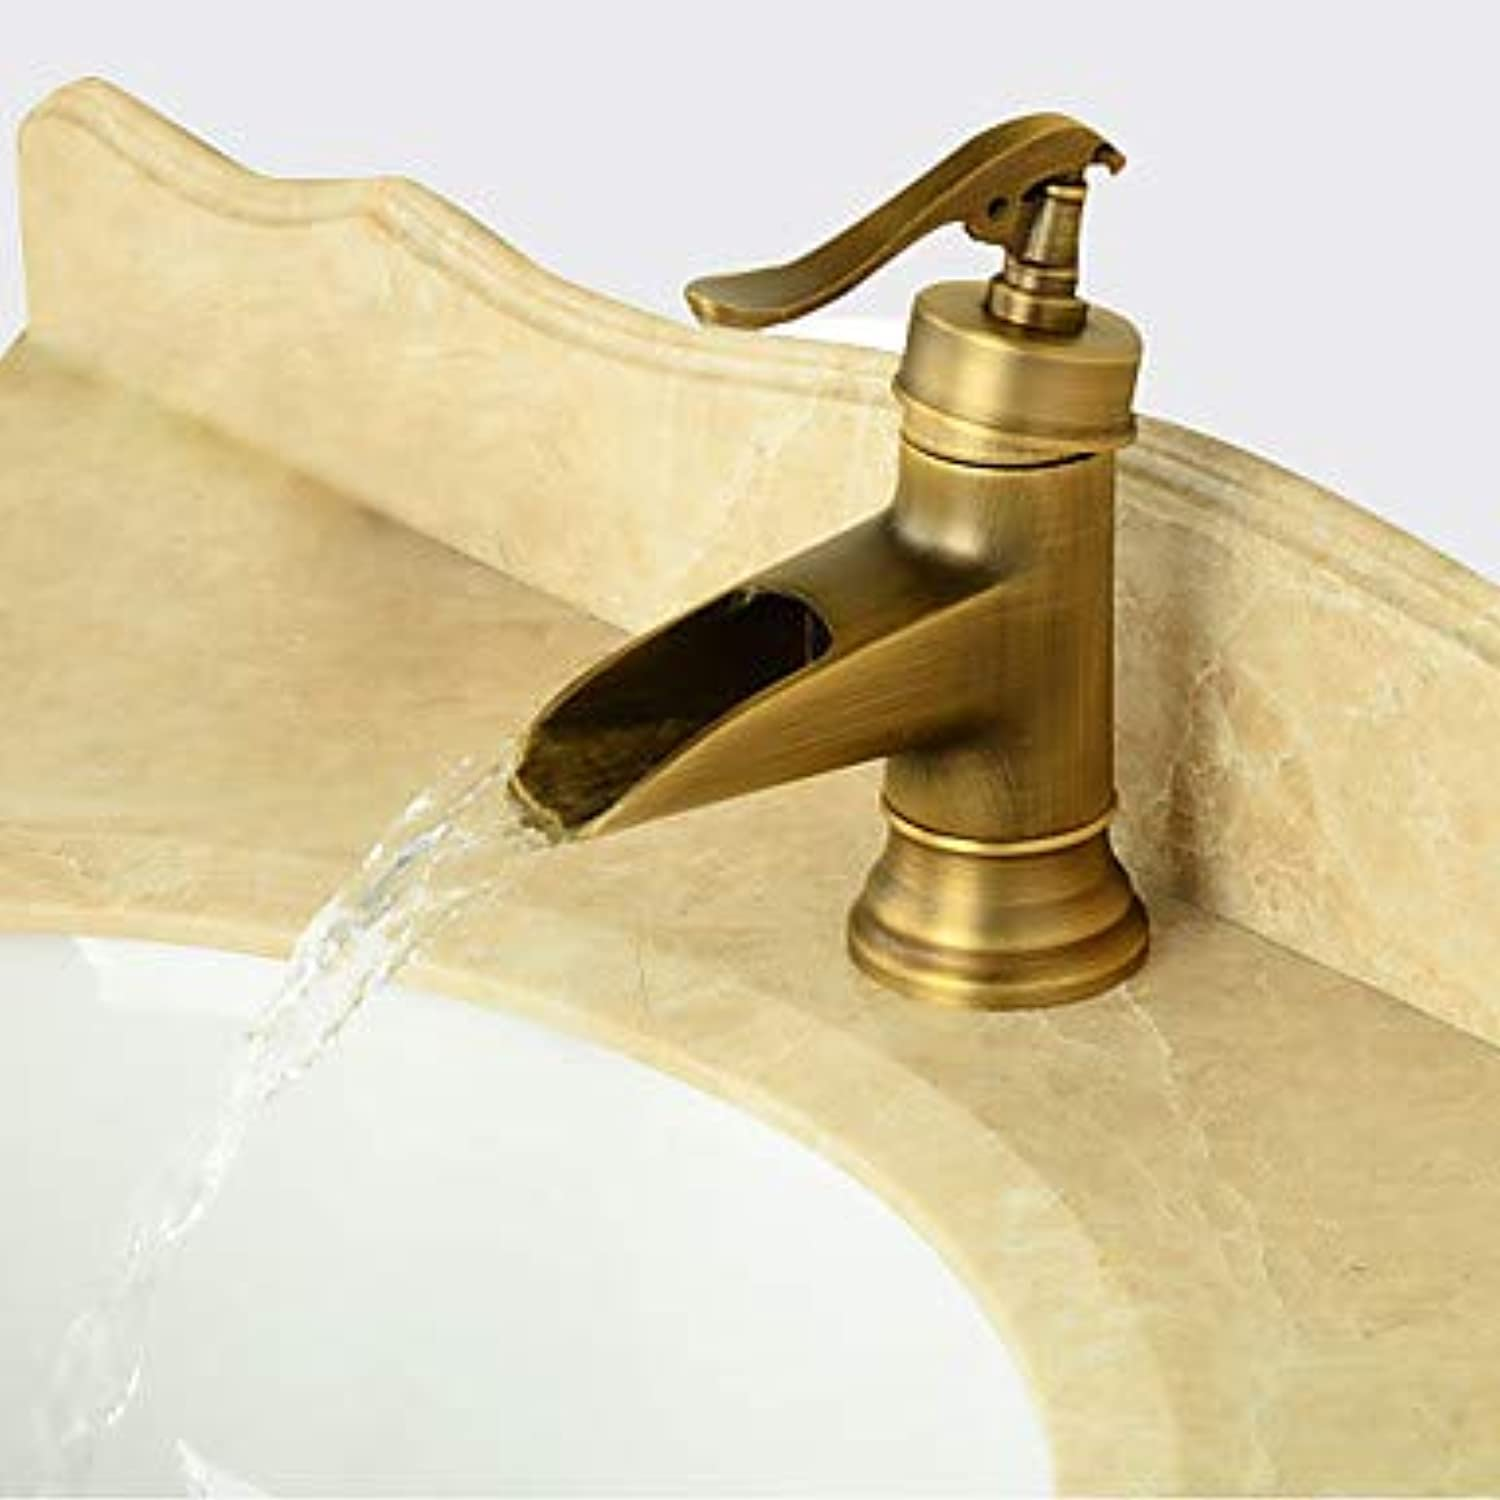 Antique Modern Traditional Centerset Pre Rinse Waterfall Widespread Ceramic Valve Single Handle Two Holes Antique Copper, Bathroom Sink